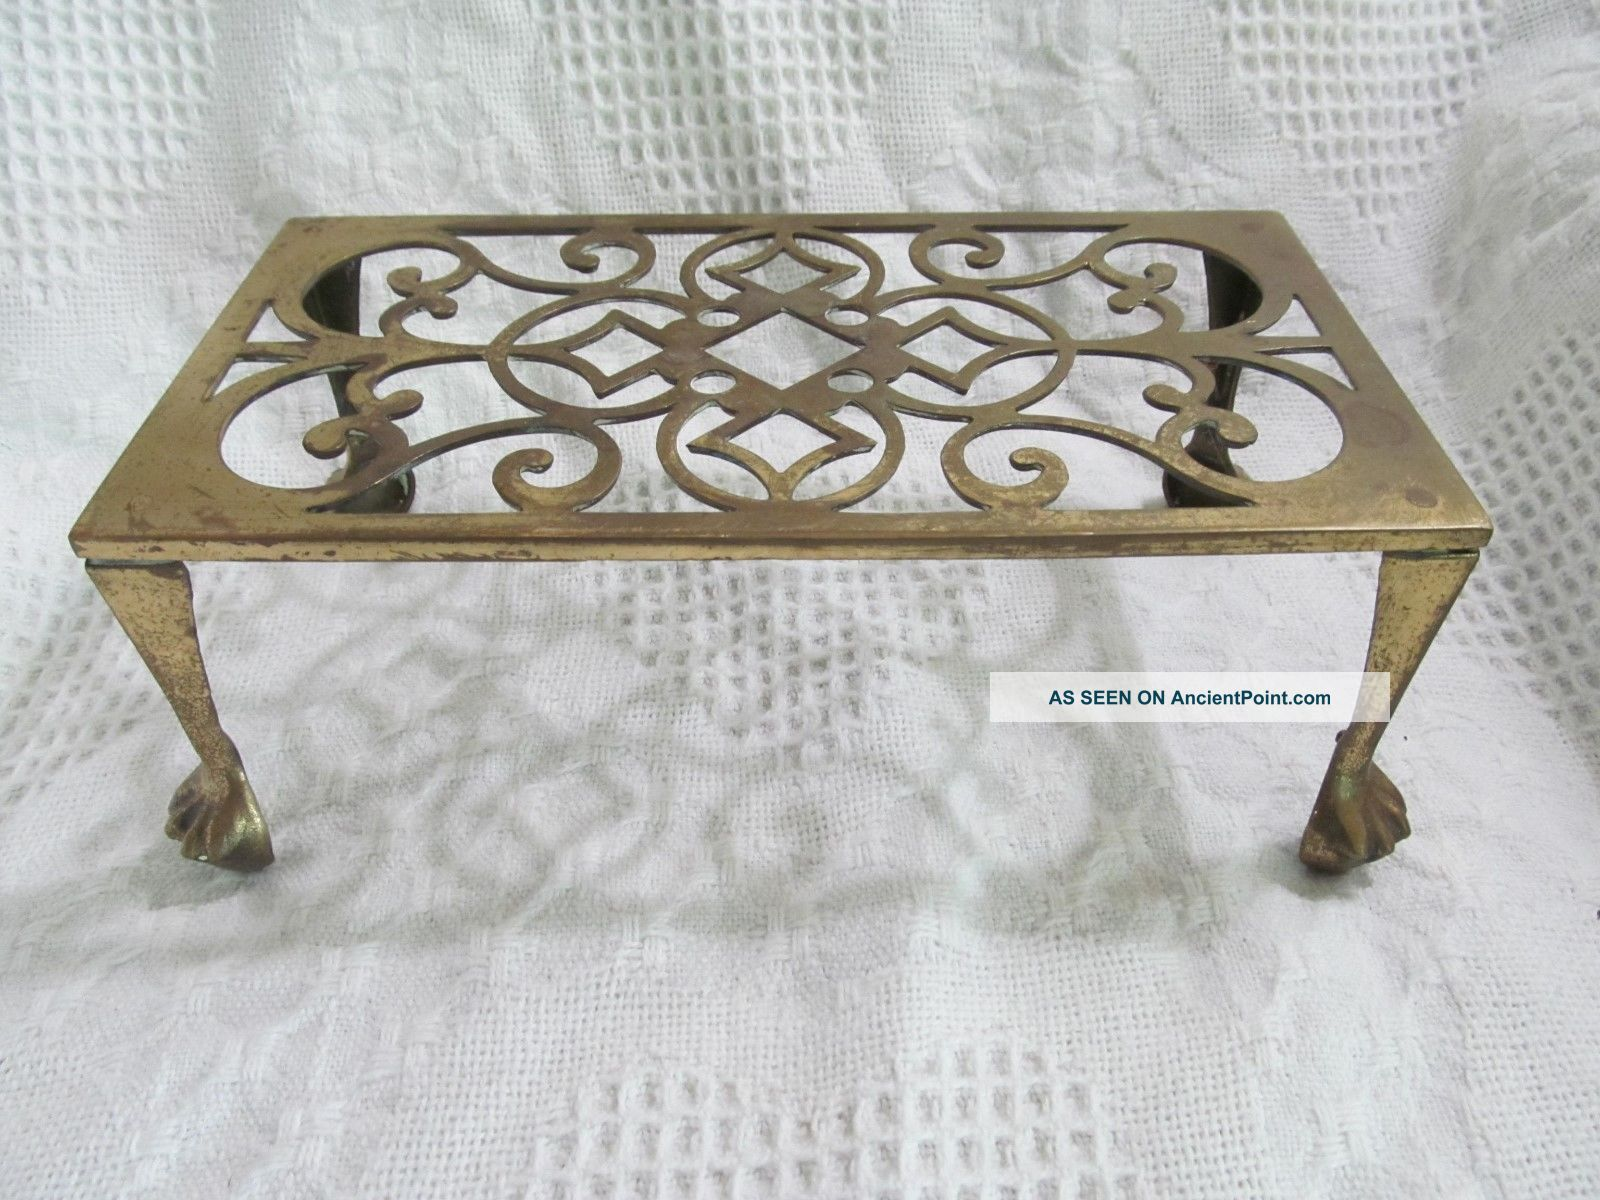 Antique Solid Brass Fireplace Stand,  Stool,  Trivet,  Kettle Holder,  Lion Paw Feet Trivets photo